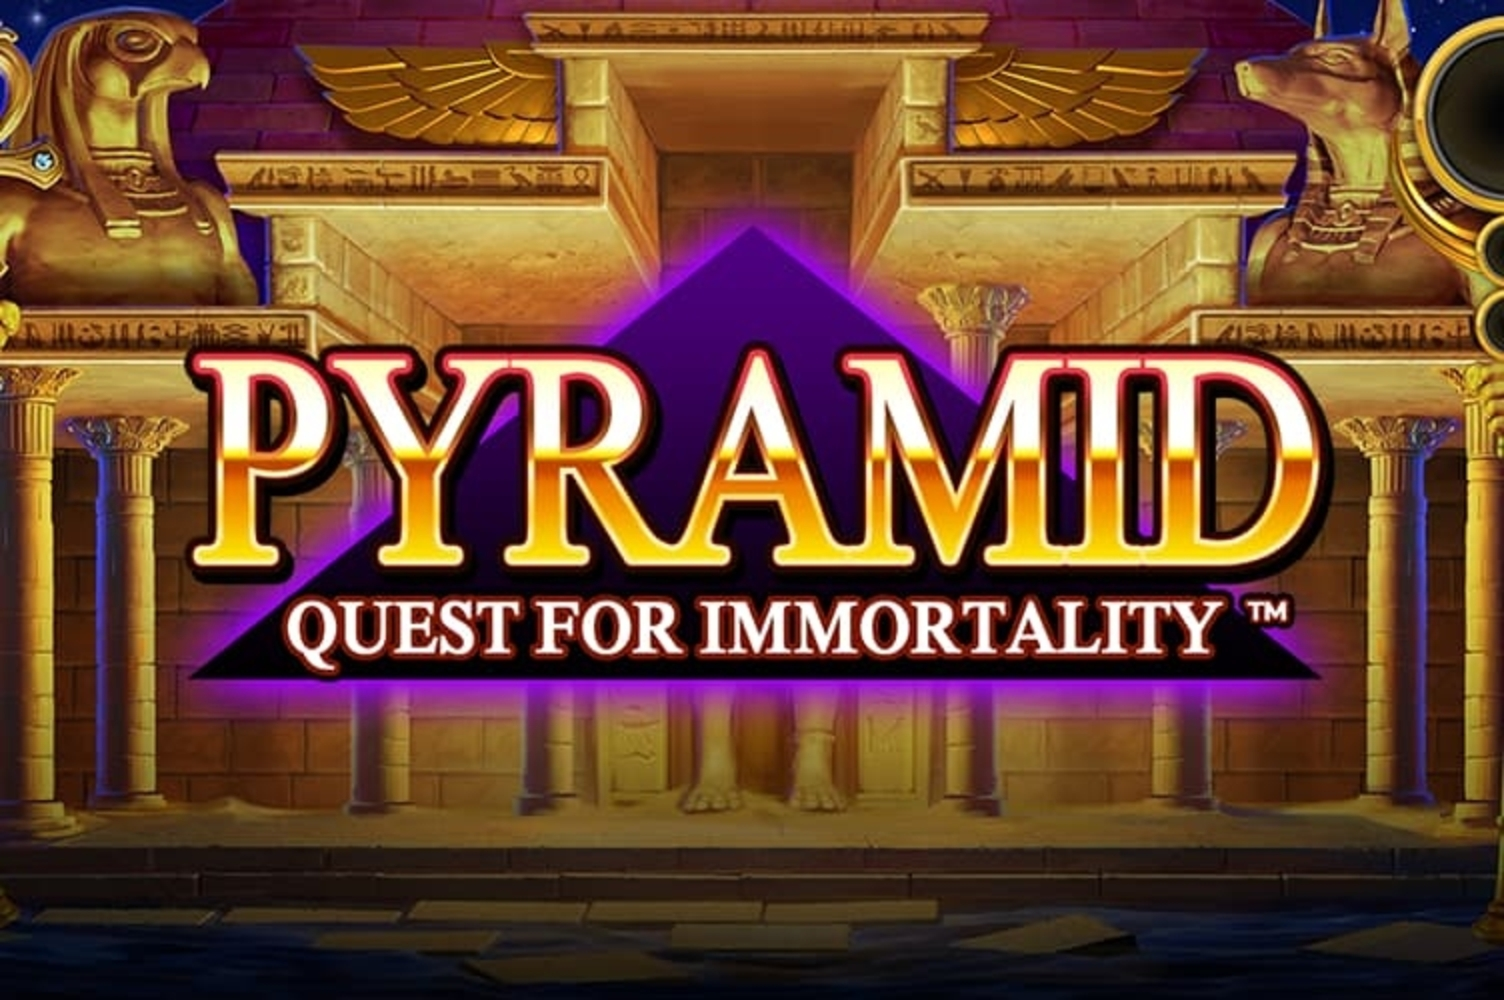 Pyramid: Quest for Immortality Online Slot Demo Game by NetEnt